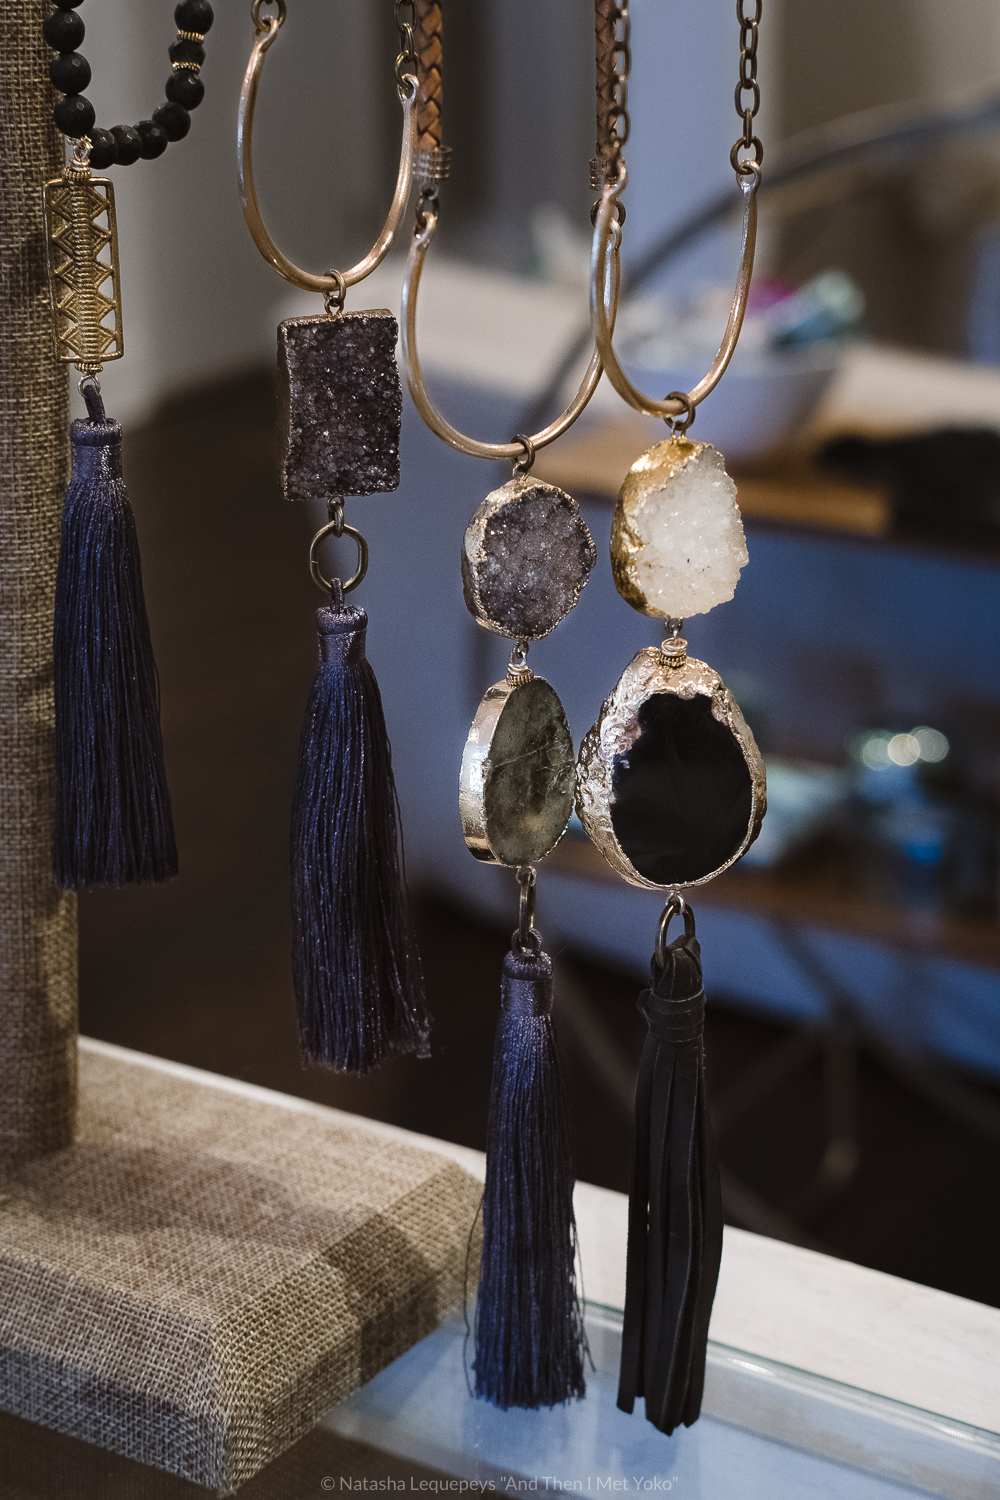 "Handmade jewelry by iSOBEL Jewelry at Midge Clothing and Goods, Savannah, GA. Travel photography and guide by © Natasha Lequepeys for ""And Then I Met Yoko"". #savannah #usa #travelguide #shoppingguide"